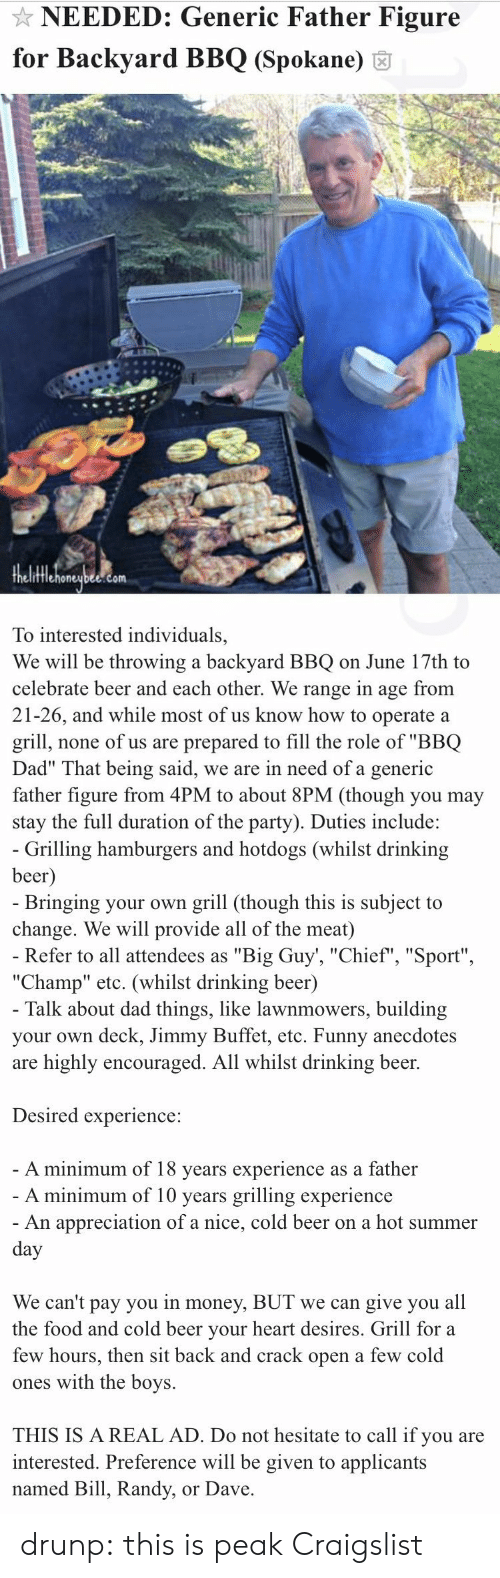 """hesitate: NEEDED: Generic Father Figure  for Backyard BBQ (Spokane) 6  fflehoneubee.com  To interested individuals,  We will be throwing a backyard BBQ on June 17th to  celebrate beer and each other. We range in age from  21-26, and while most of us know how to operate a  grill, none of us are prepared to fill the role of """"BBQ  Dad"""" That being said, we are in need of a generic  father figure from 4PM to about 8PM (though you may  stay the full duration of the party). Duties include:   Grilling hamburgers and hotdogs (whilst drinking  beer  Bringing your own grill (though this is subject to  change. We will provide all of the meat)  Refer to all attendees as """"Big Guy', """"Chief"""", """"Sport""""  """"Champ"""" etc. (whilst drinking beer)  Talk about dad things, like lawnmowers, building  your own deck, Jimmy Buffet, etc. Funny anecdotes  are highly encouraged. All whilst drinking beer.  Desired experience:  A minimum of 18 vears experience as a father  A minimum of 10 years grilling experience  An appreciation of a nice, cold beer on a hot summer  We can't pay you in money, BUT we can give you all  the food and cold beer vour heart desires. Grill for a  few hours, then sit back and crack open a few cold  ones with the boys.  THIS IS A REAL AD. Do not hesitate to call if you are  interested. Preference will be given to applicants  named Bill, Randy, or Dave drunp: this is peak Craigslist"""